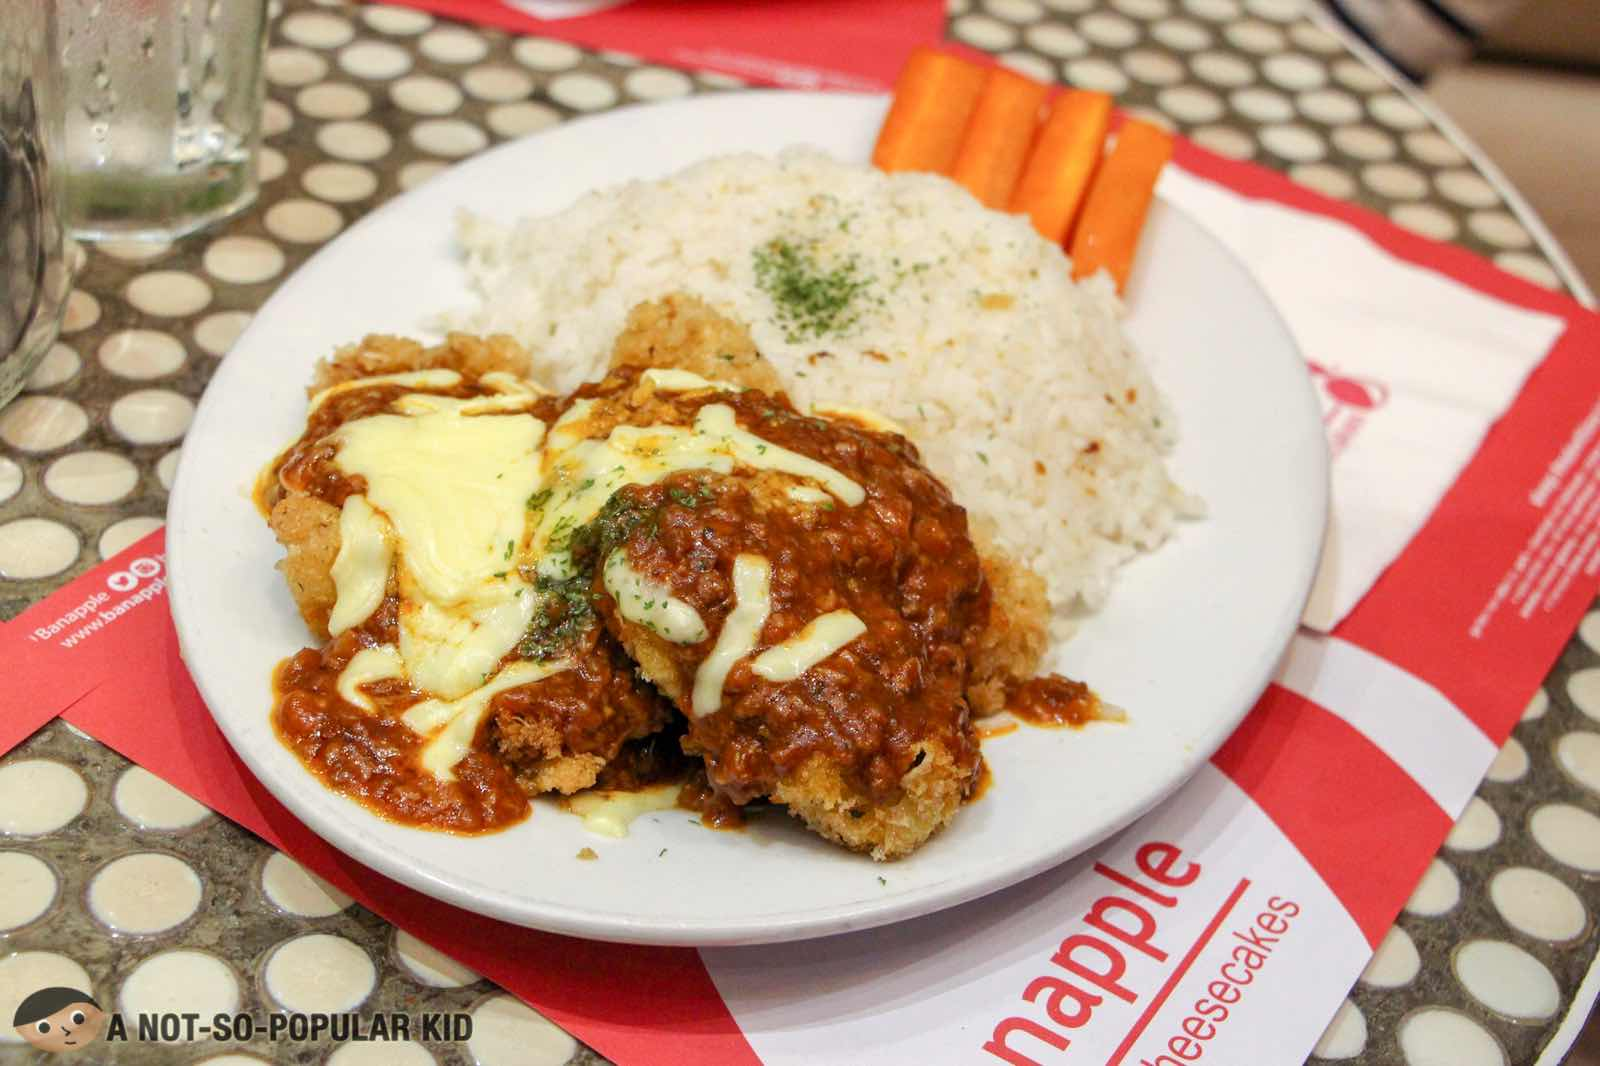 Affordable Banapple in Gateway Mall, Quezon City